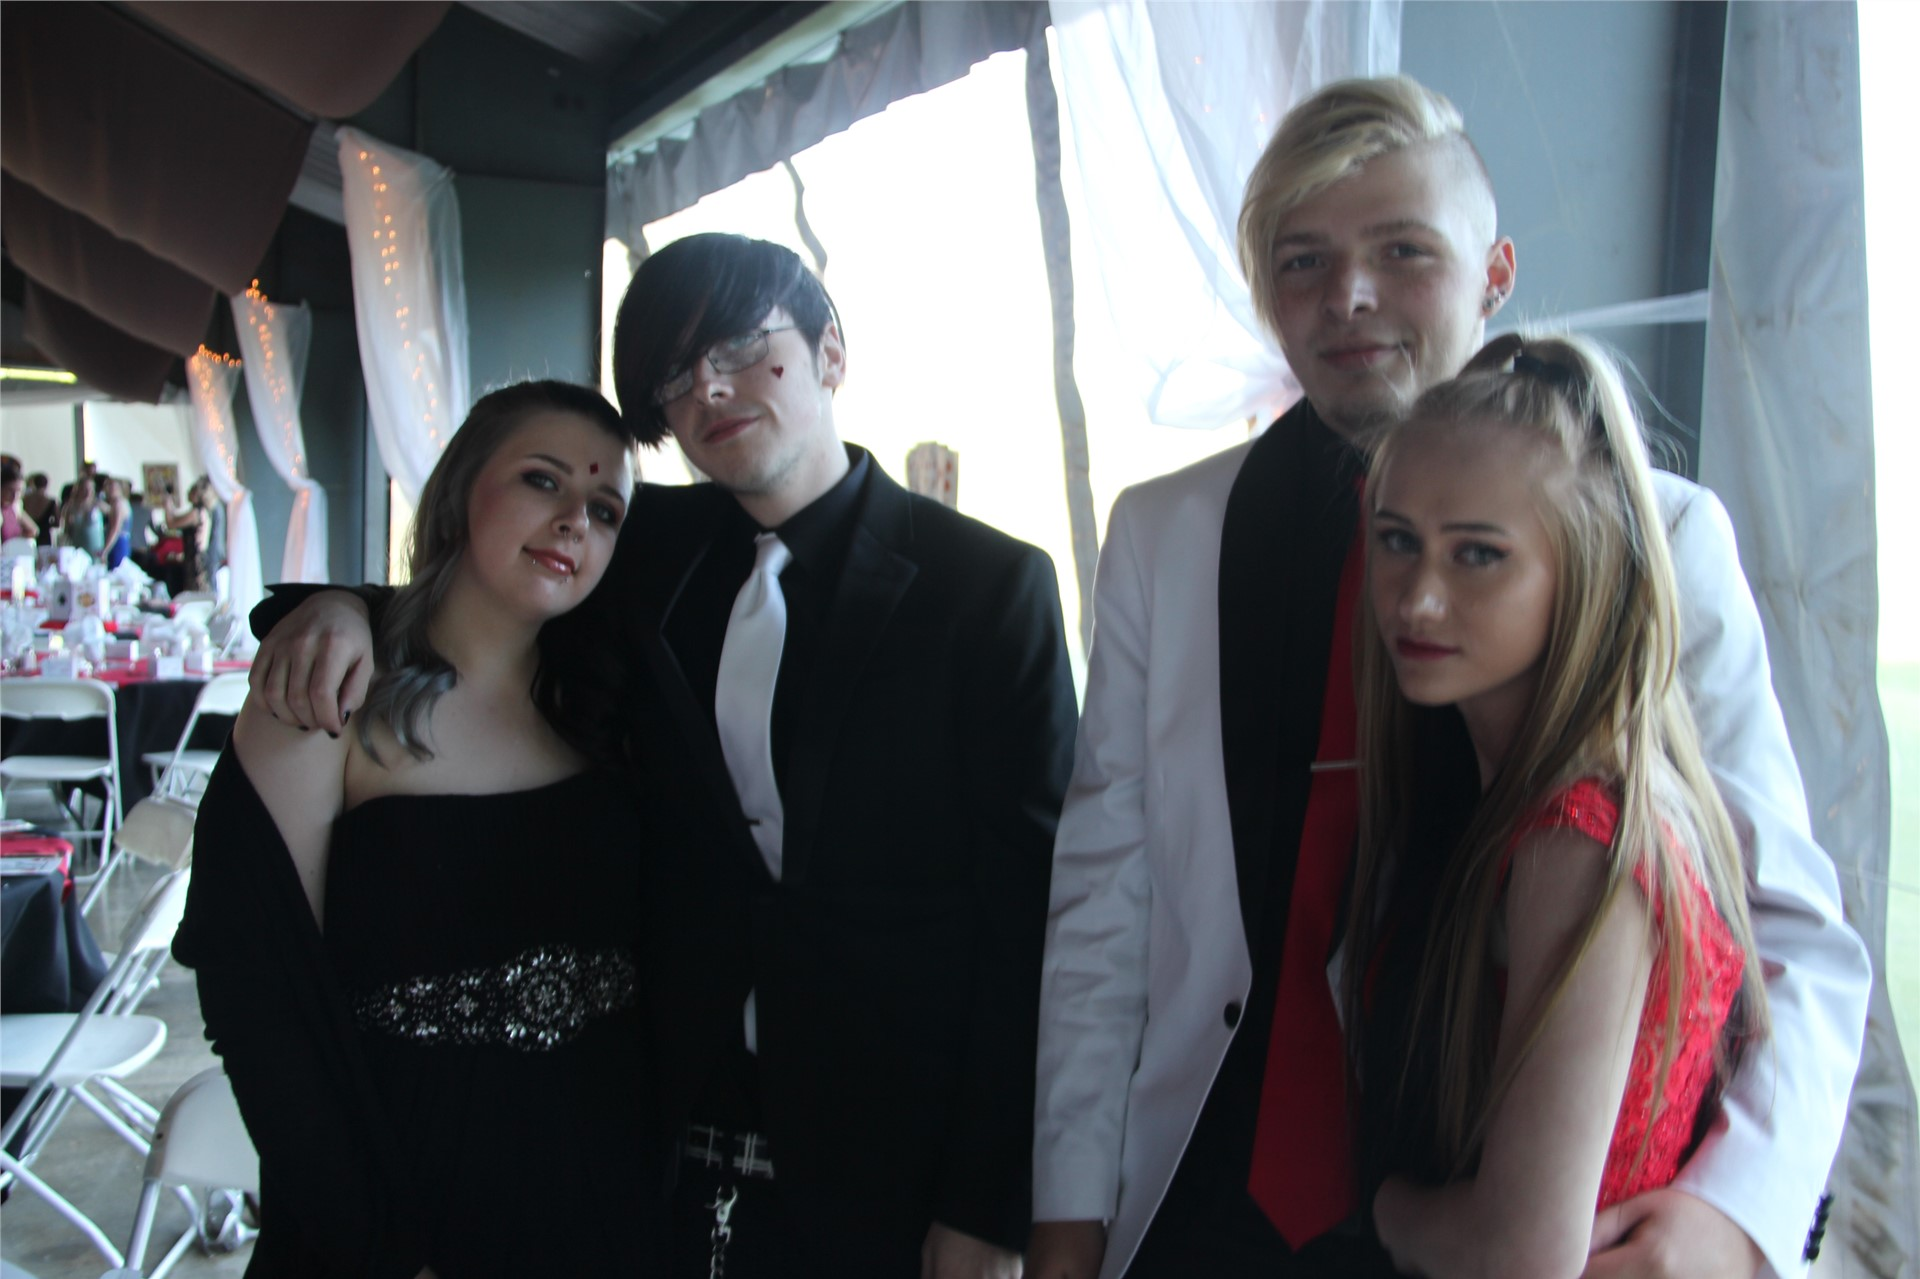 Two sets of prom dates pose for photo inside prom event